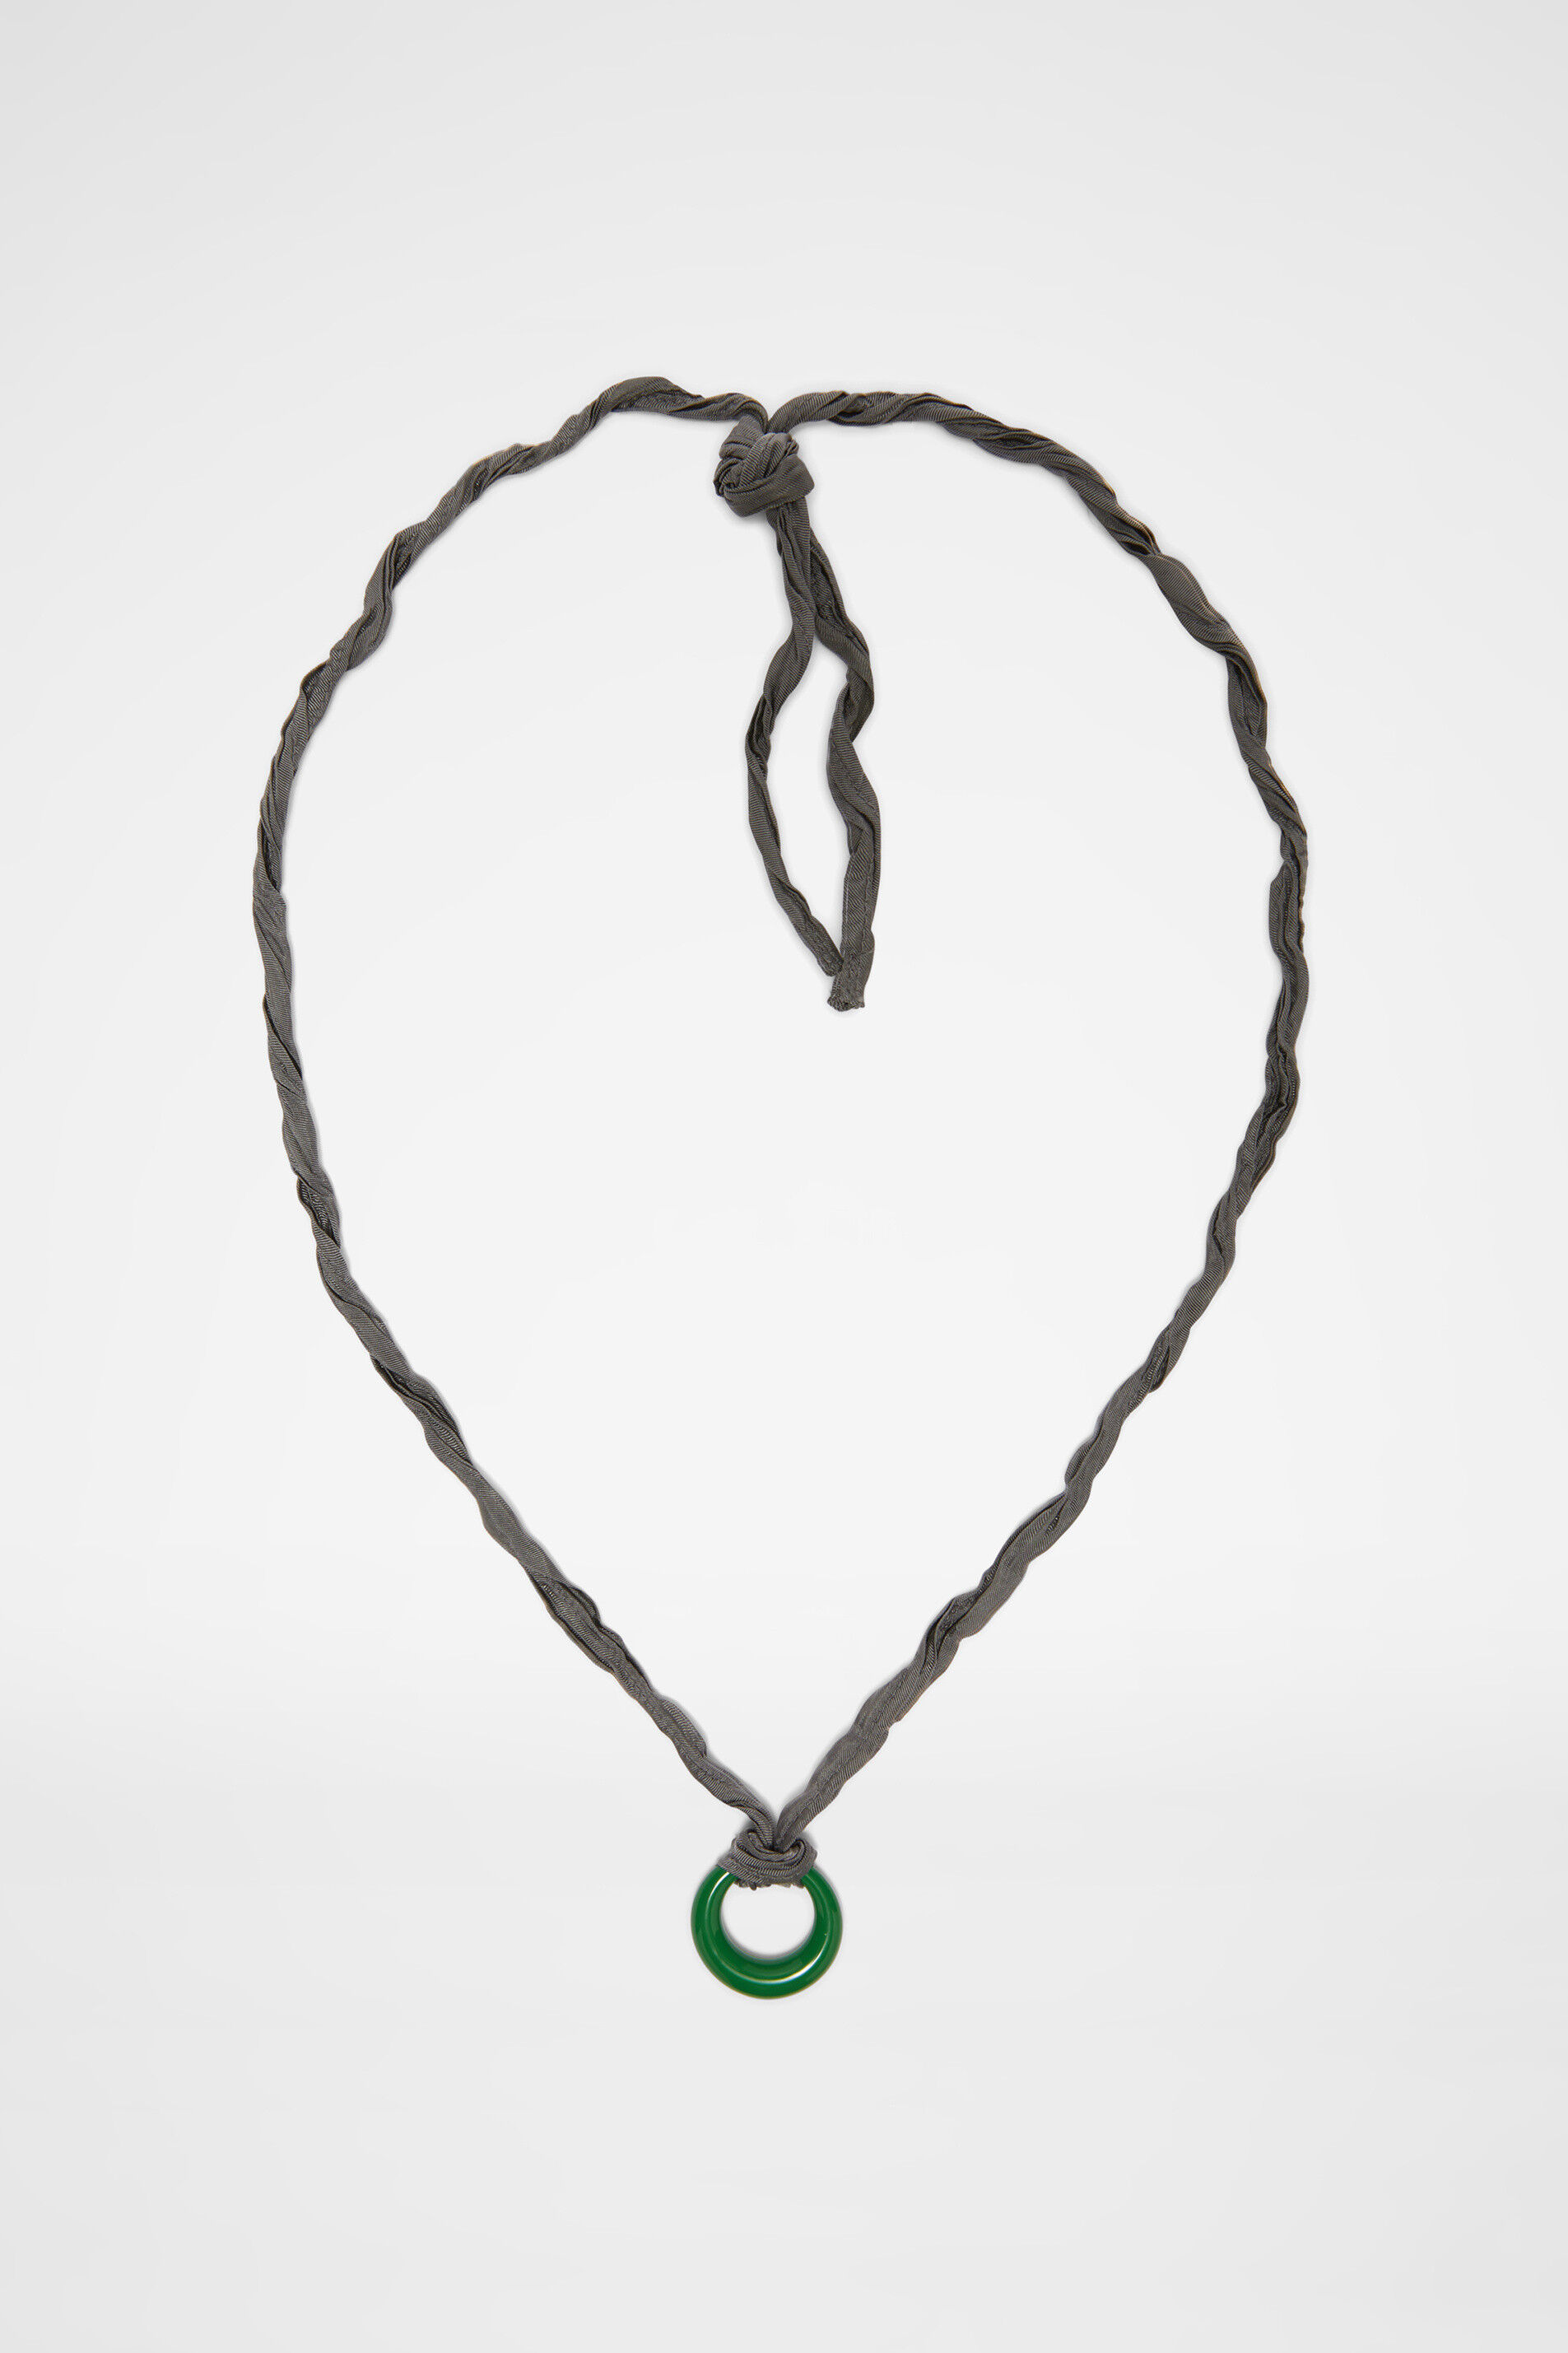 Necklace, green, large